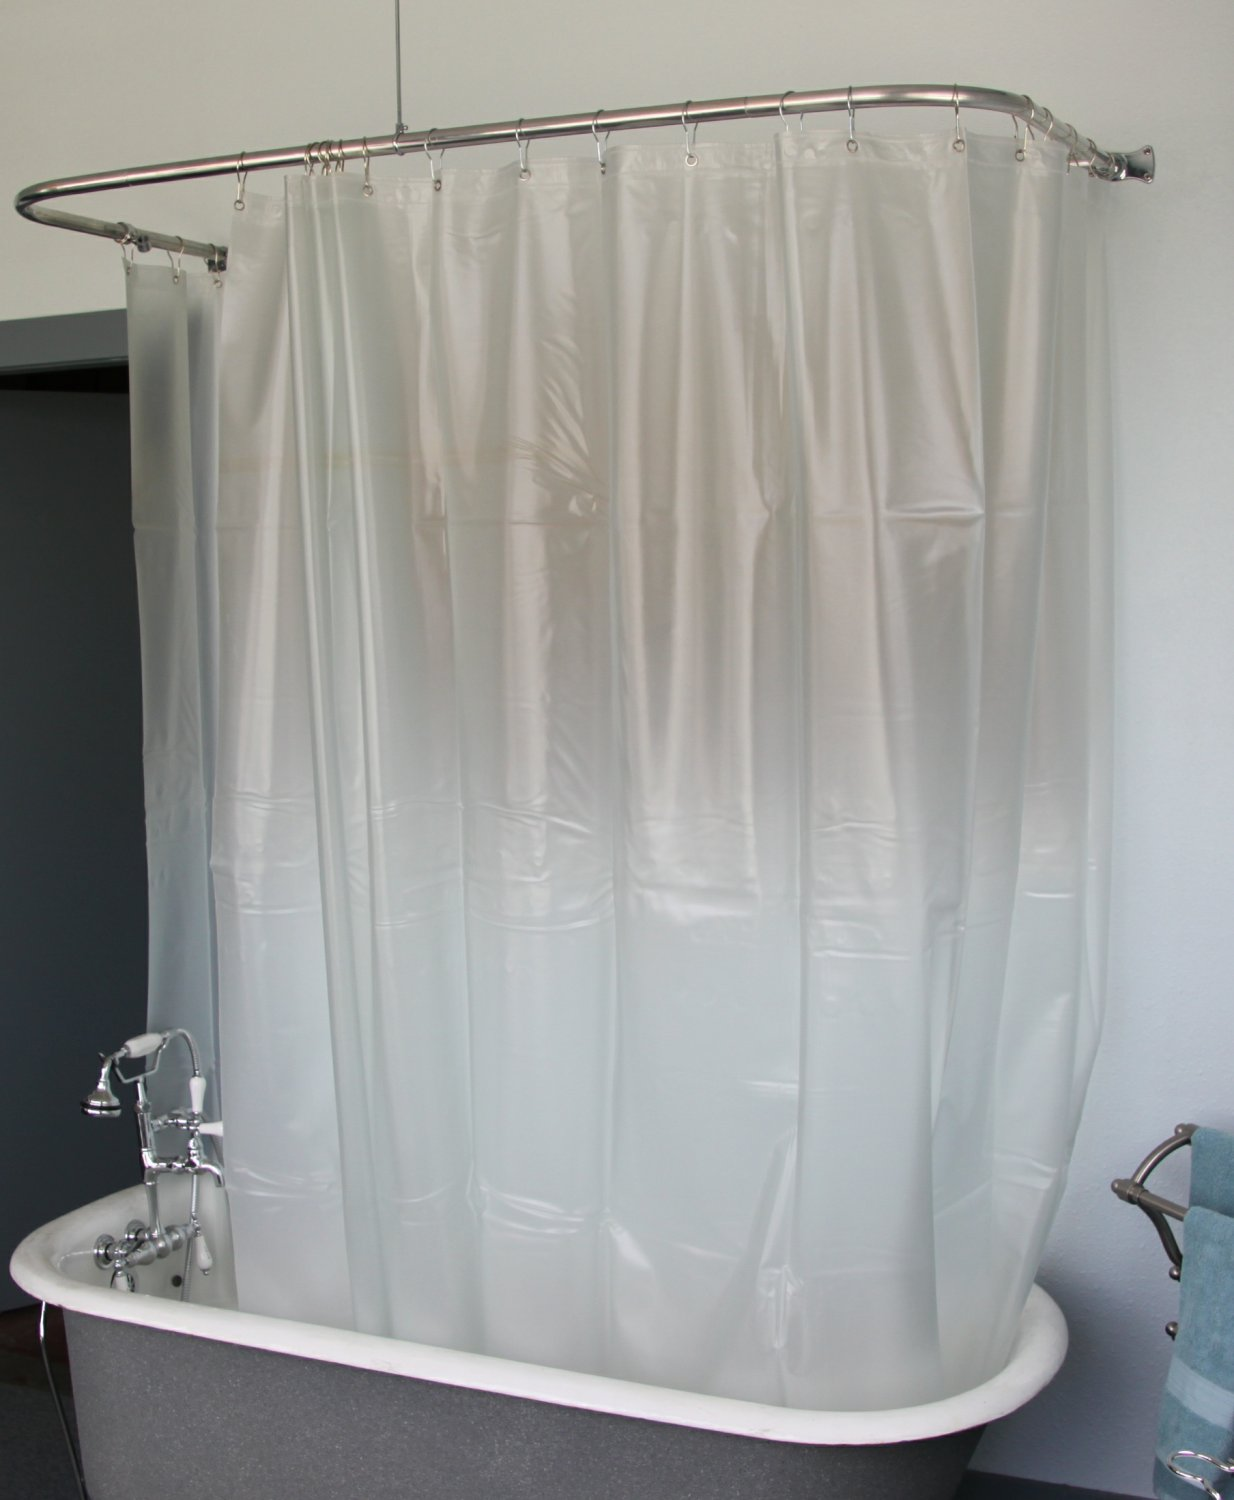 clawfoot shower curtain opaque less magnets. Black Bedroom Furniture Sets. Home Design Ideas